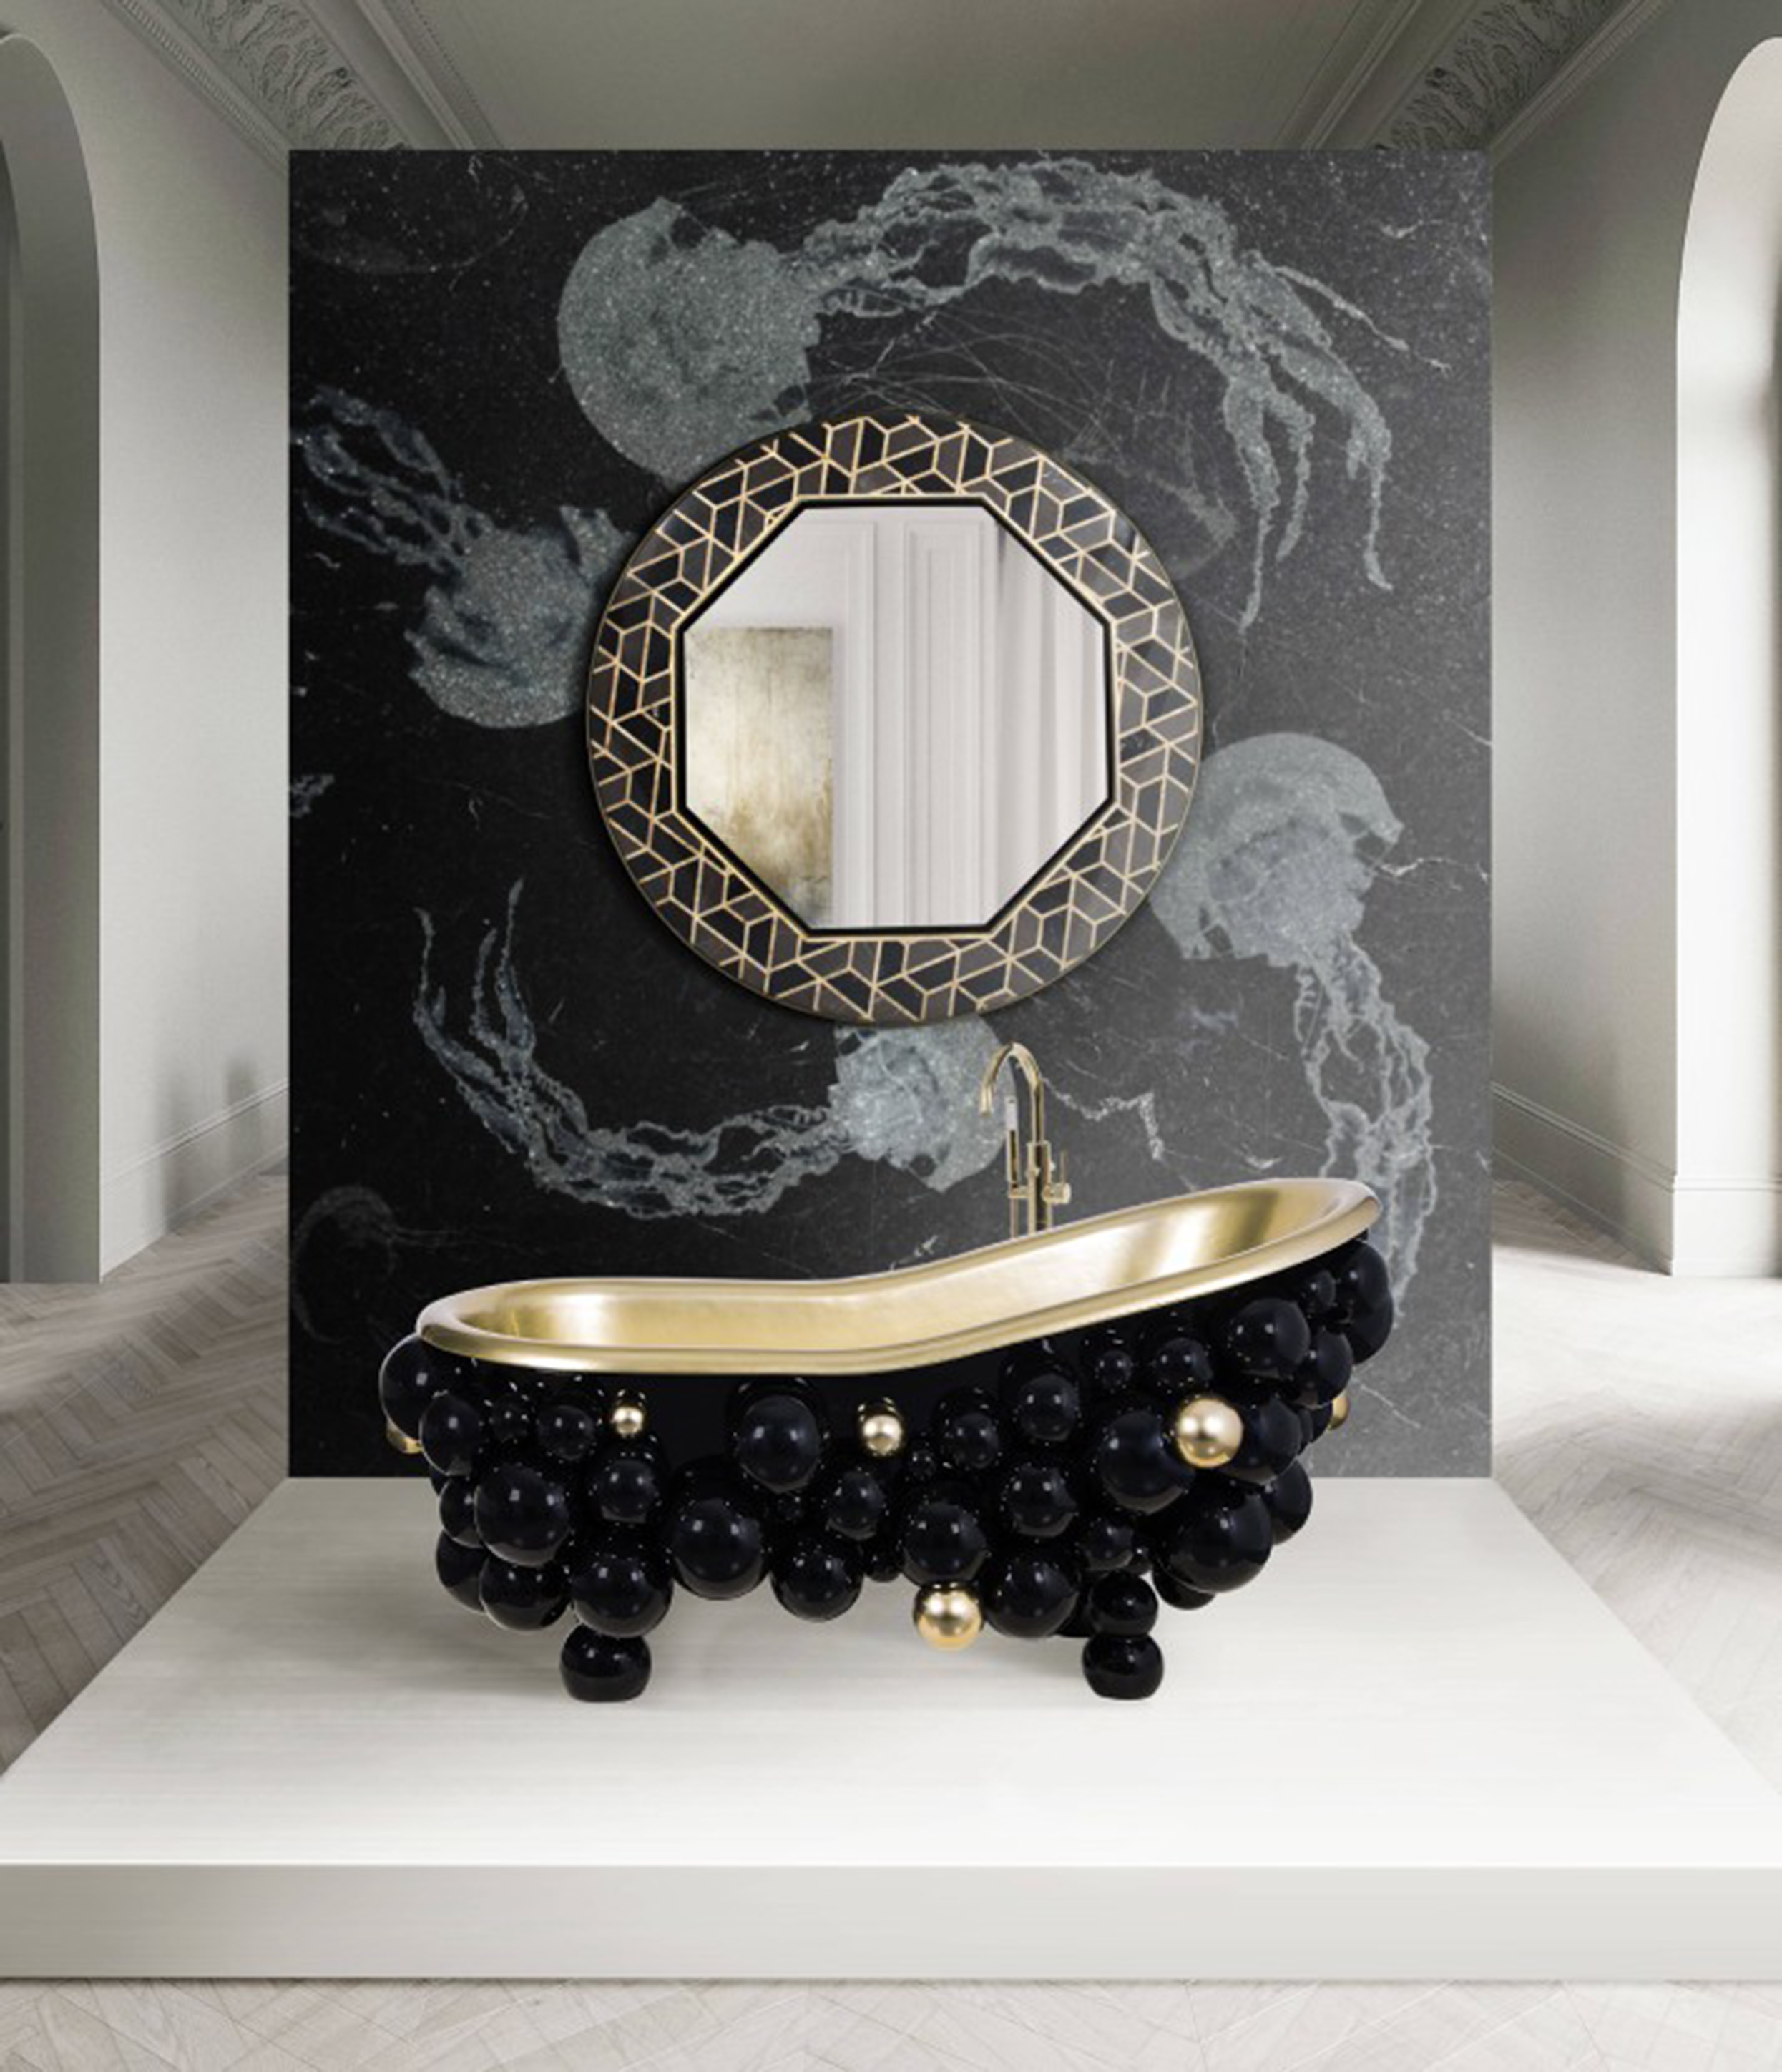 New Level of Luxury: Sumptuous Surfaces surfaces New Level of Luxury: Sophisticated Surfaces a sophisticated private oasis with the tortoise mirror and the newton bathtub 1